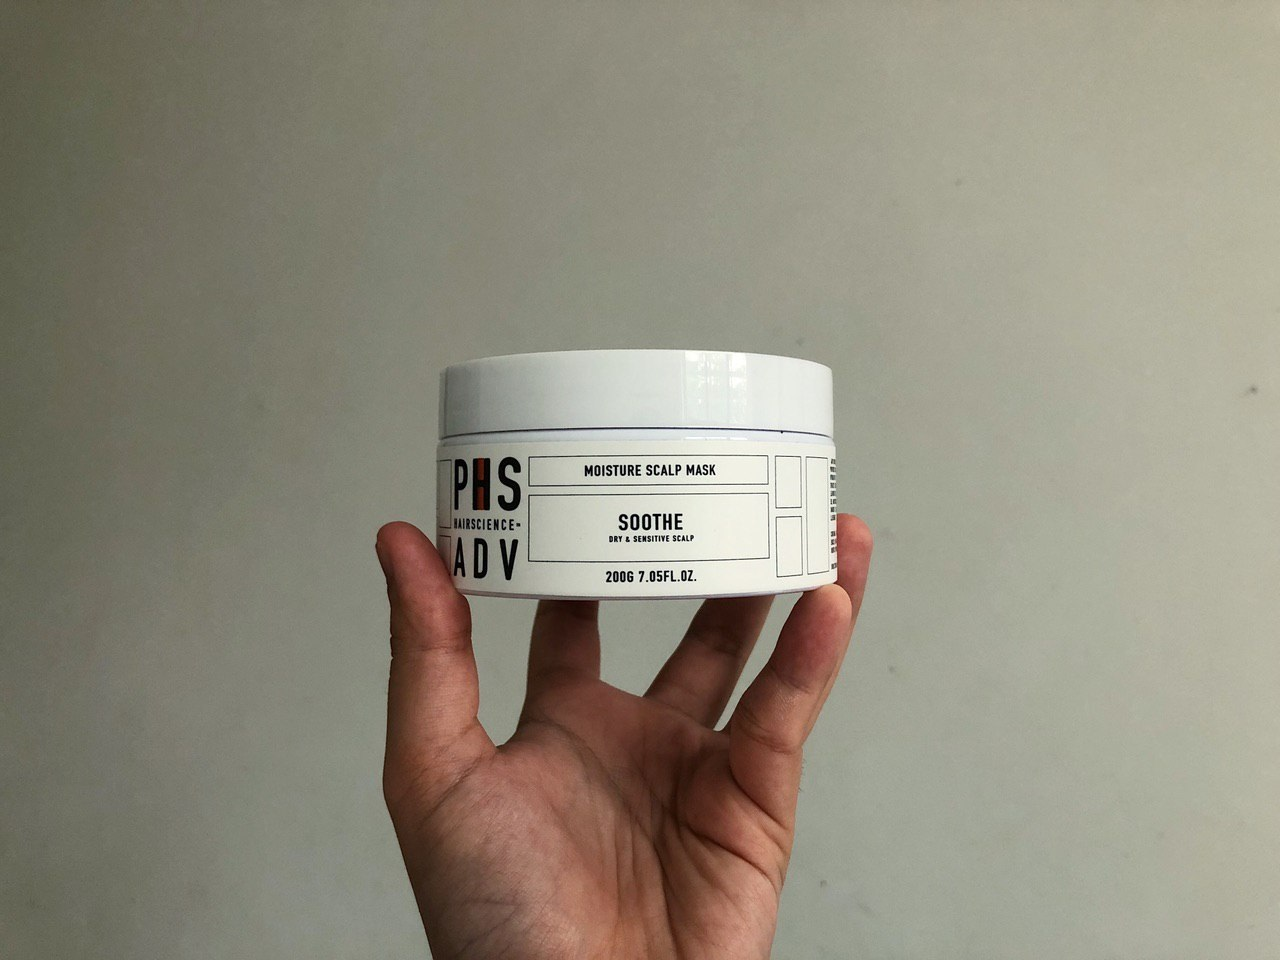 PHS Hairscience soothe mask